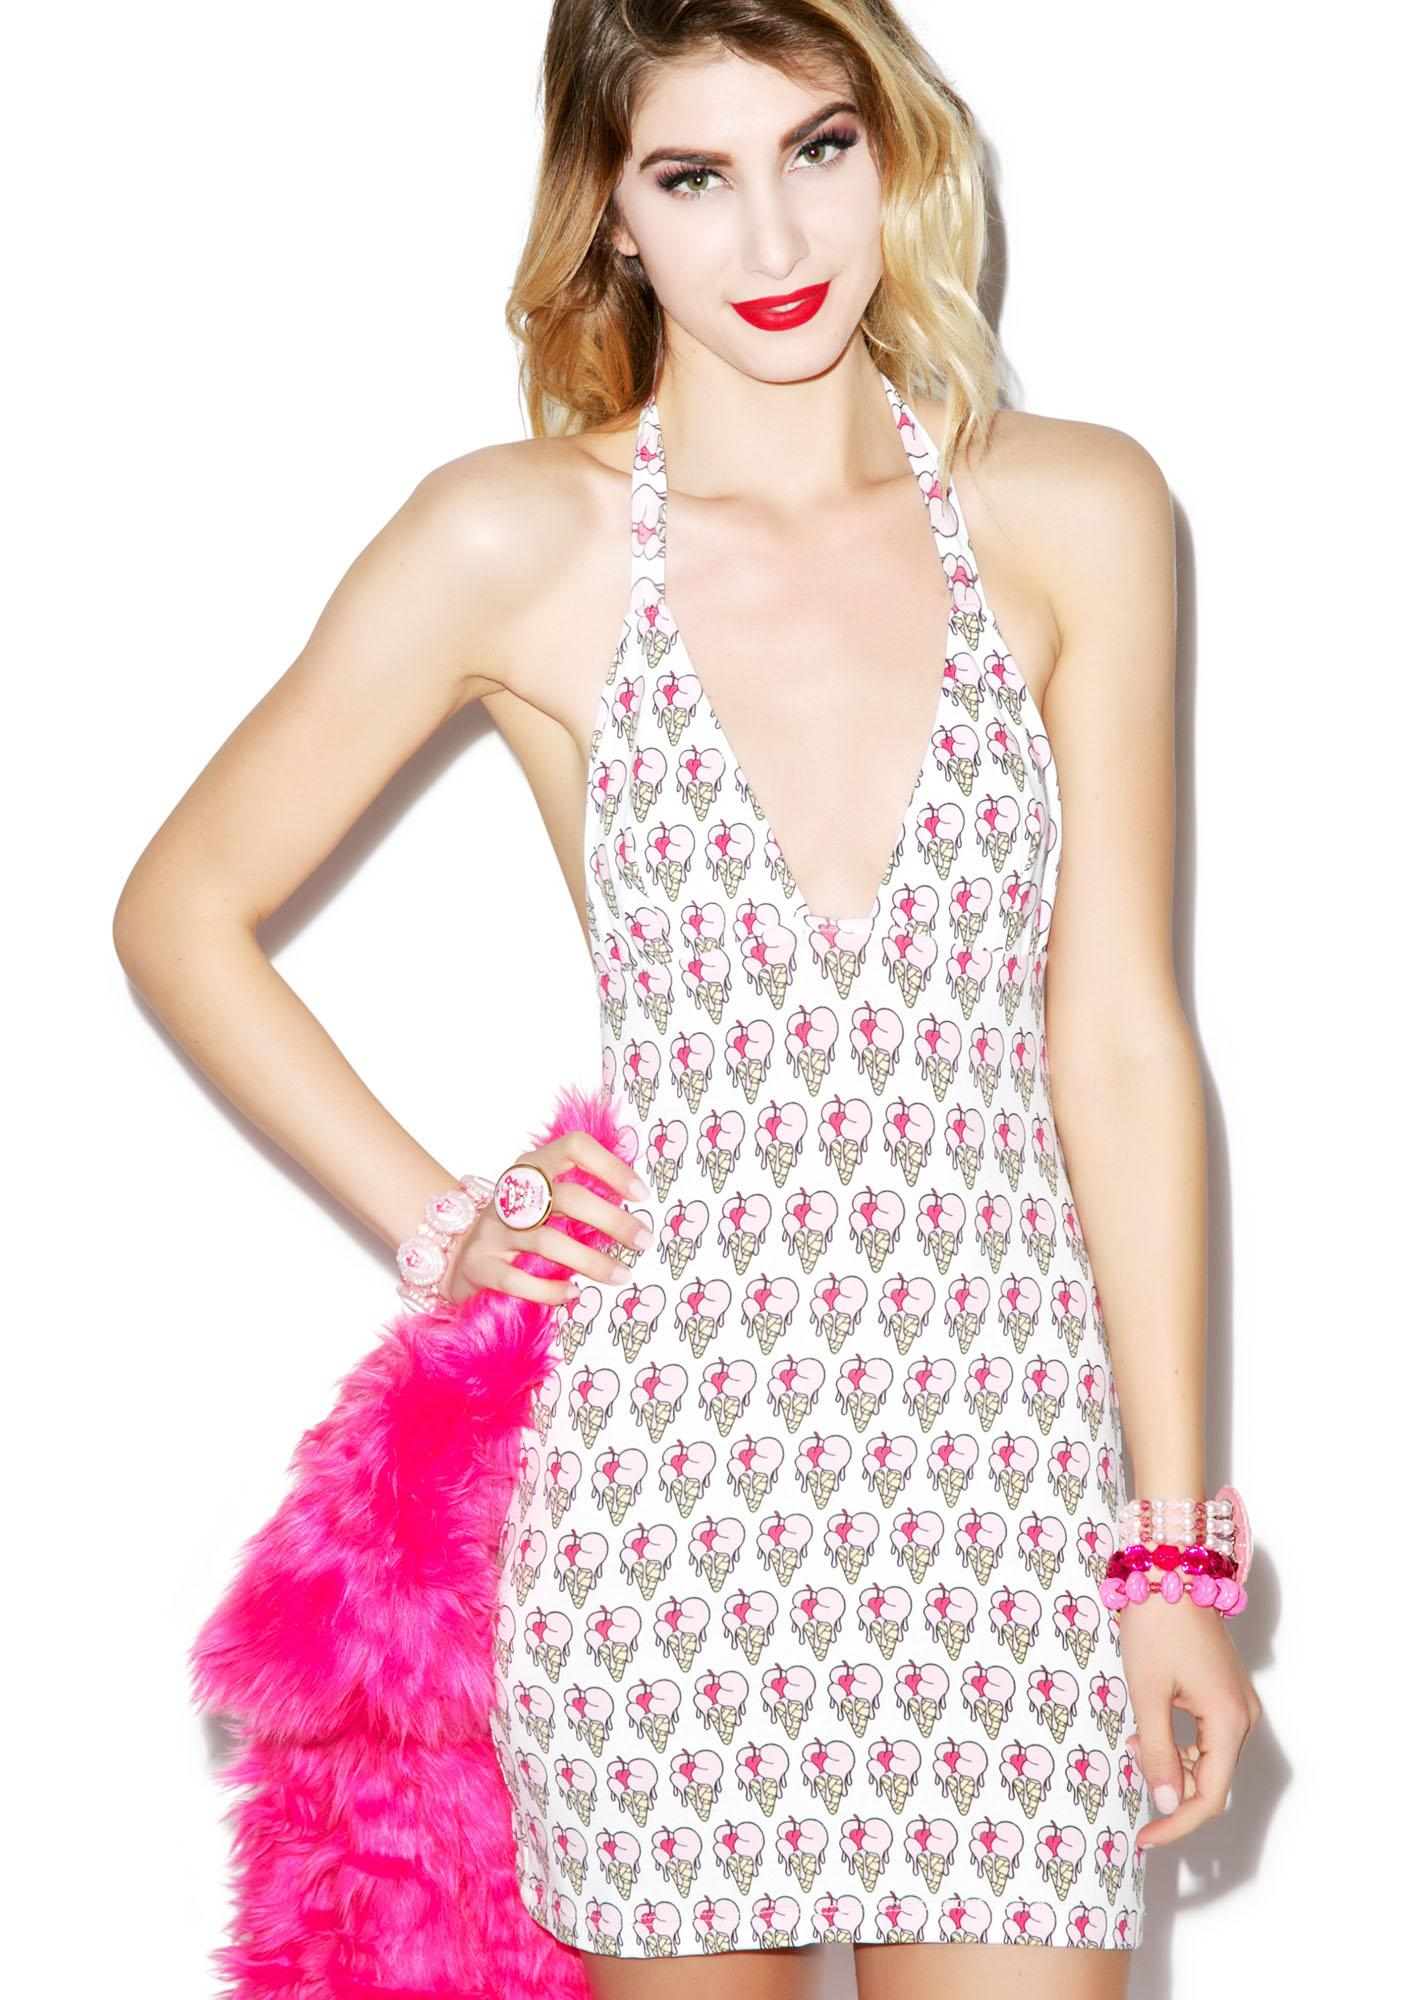 J Valentine Silly Cone Dress